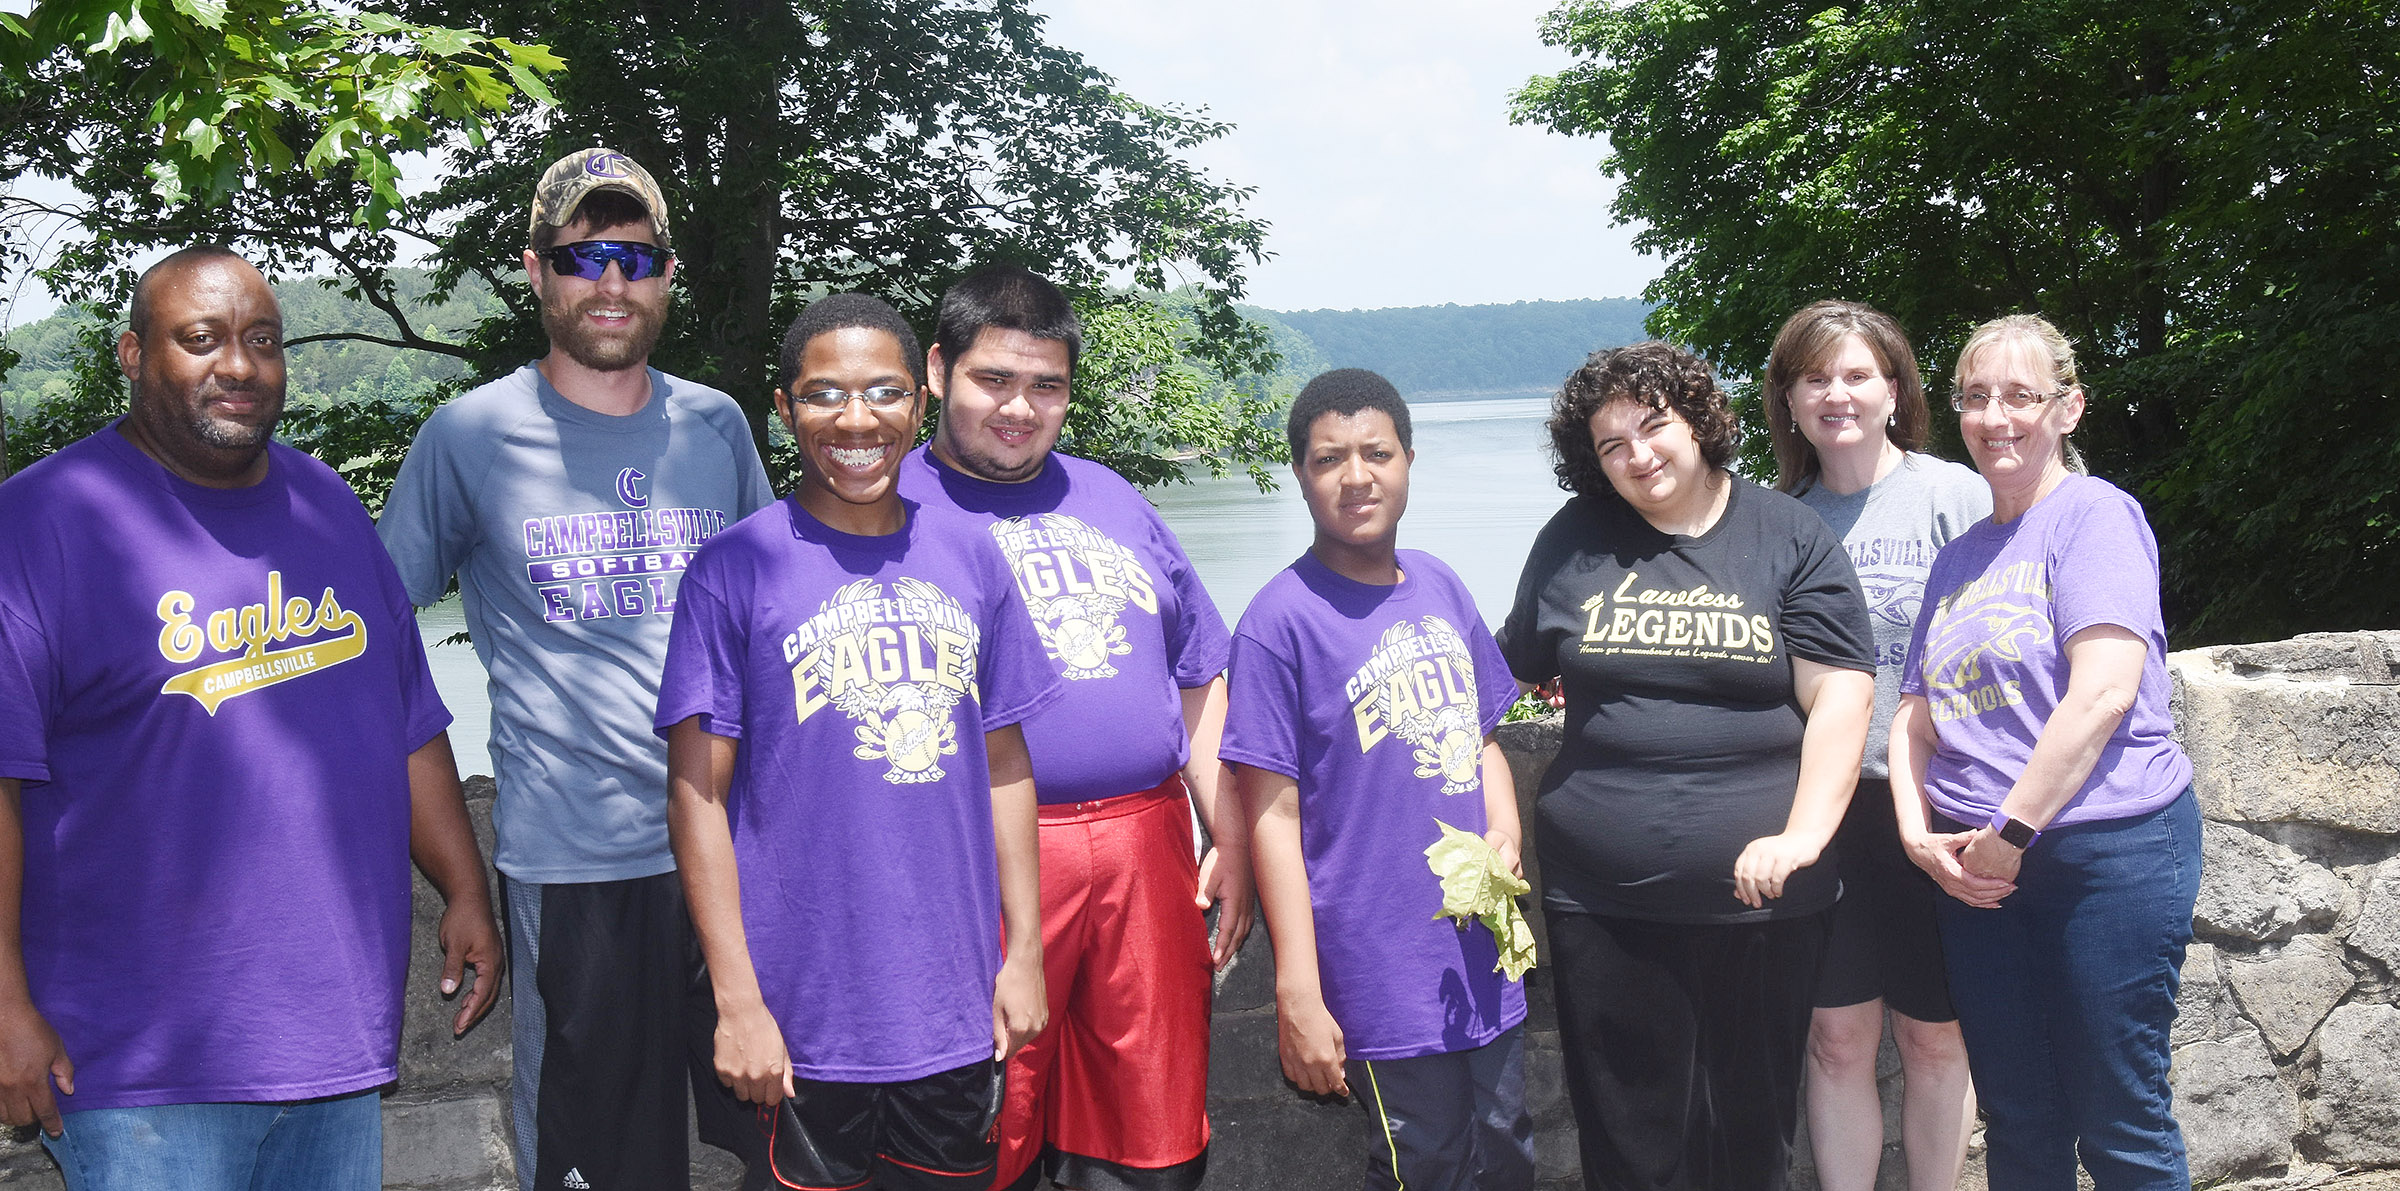 From left, CHS instructional assistants Joseph Taylor and Matthew Schmuck, junior Travis Nash, senior Robert Tungate, juniors Chris Moran and Brooke Tucker, Community Based Work Transition Program Coordinator Wendy Sabo and exceptional child educator Juanita Young pose for a photo together in front of Green River Lake.